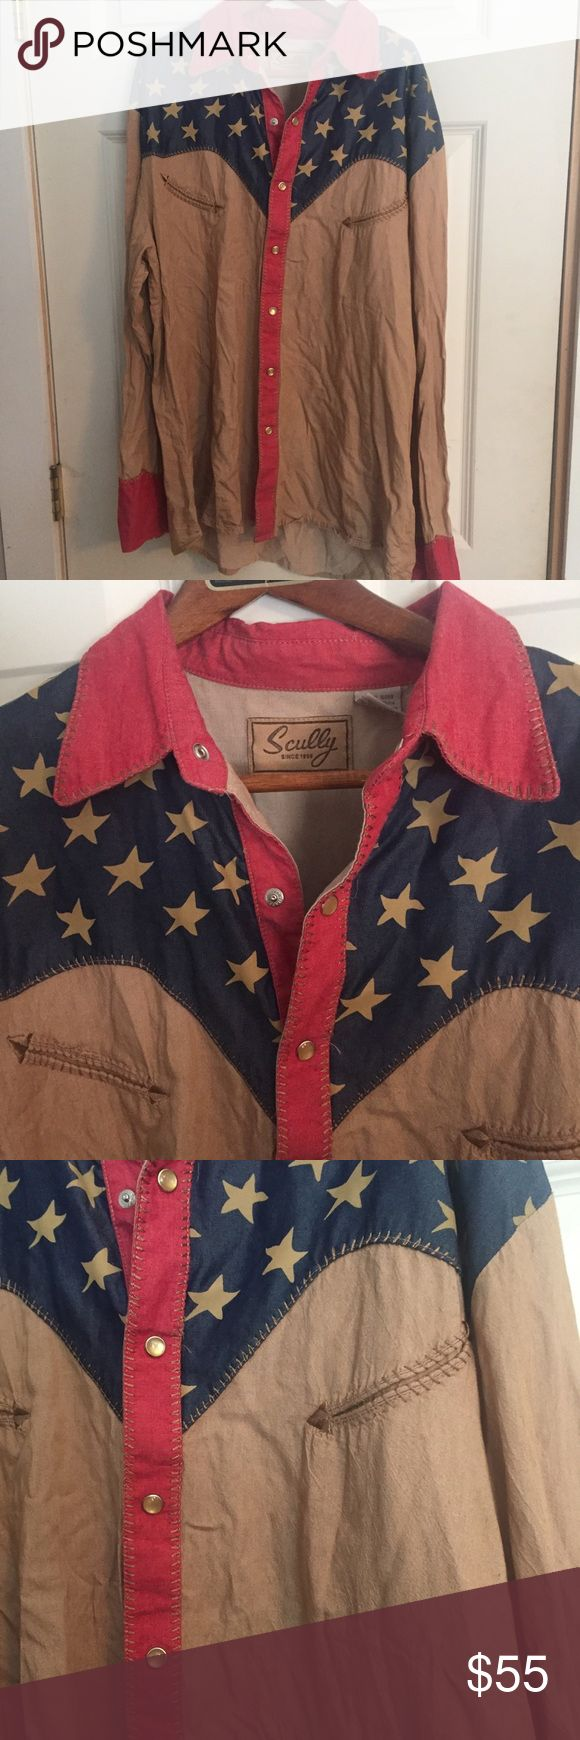 SCULLY Western Shirt Medium American Flag 🇺🇸 Scully Long Sleeve Shirt. Western Style with American Flag pattern. Size Medium. Super soft material. Scully Shirts Casual Button Down Shirts